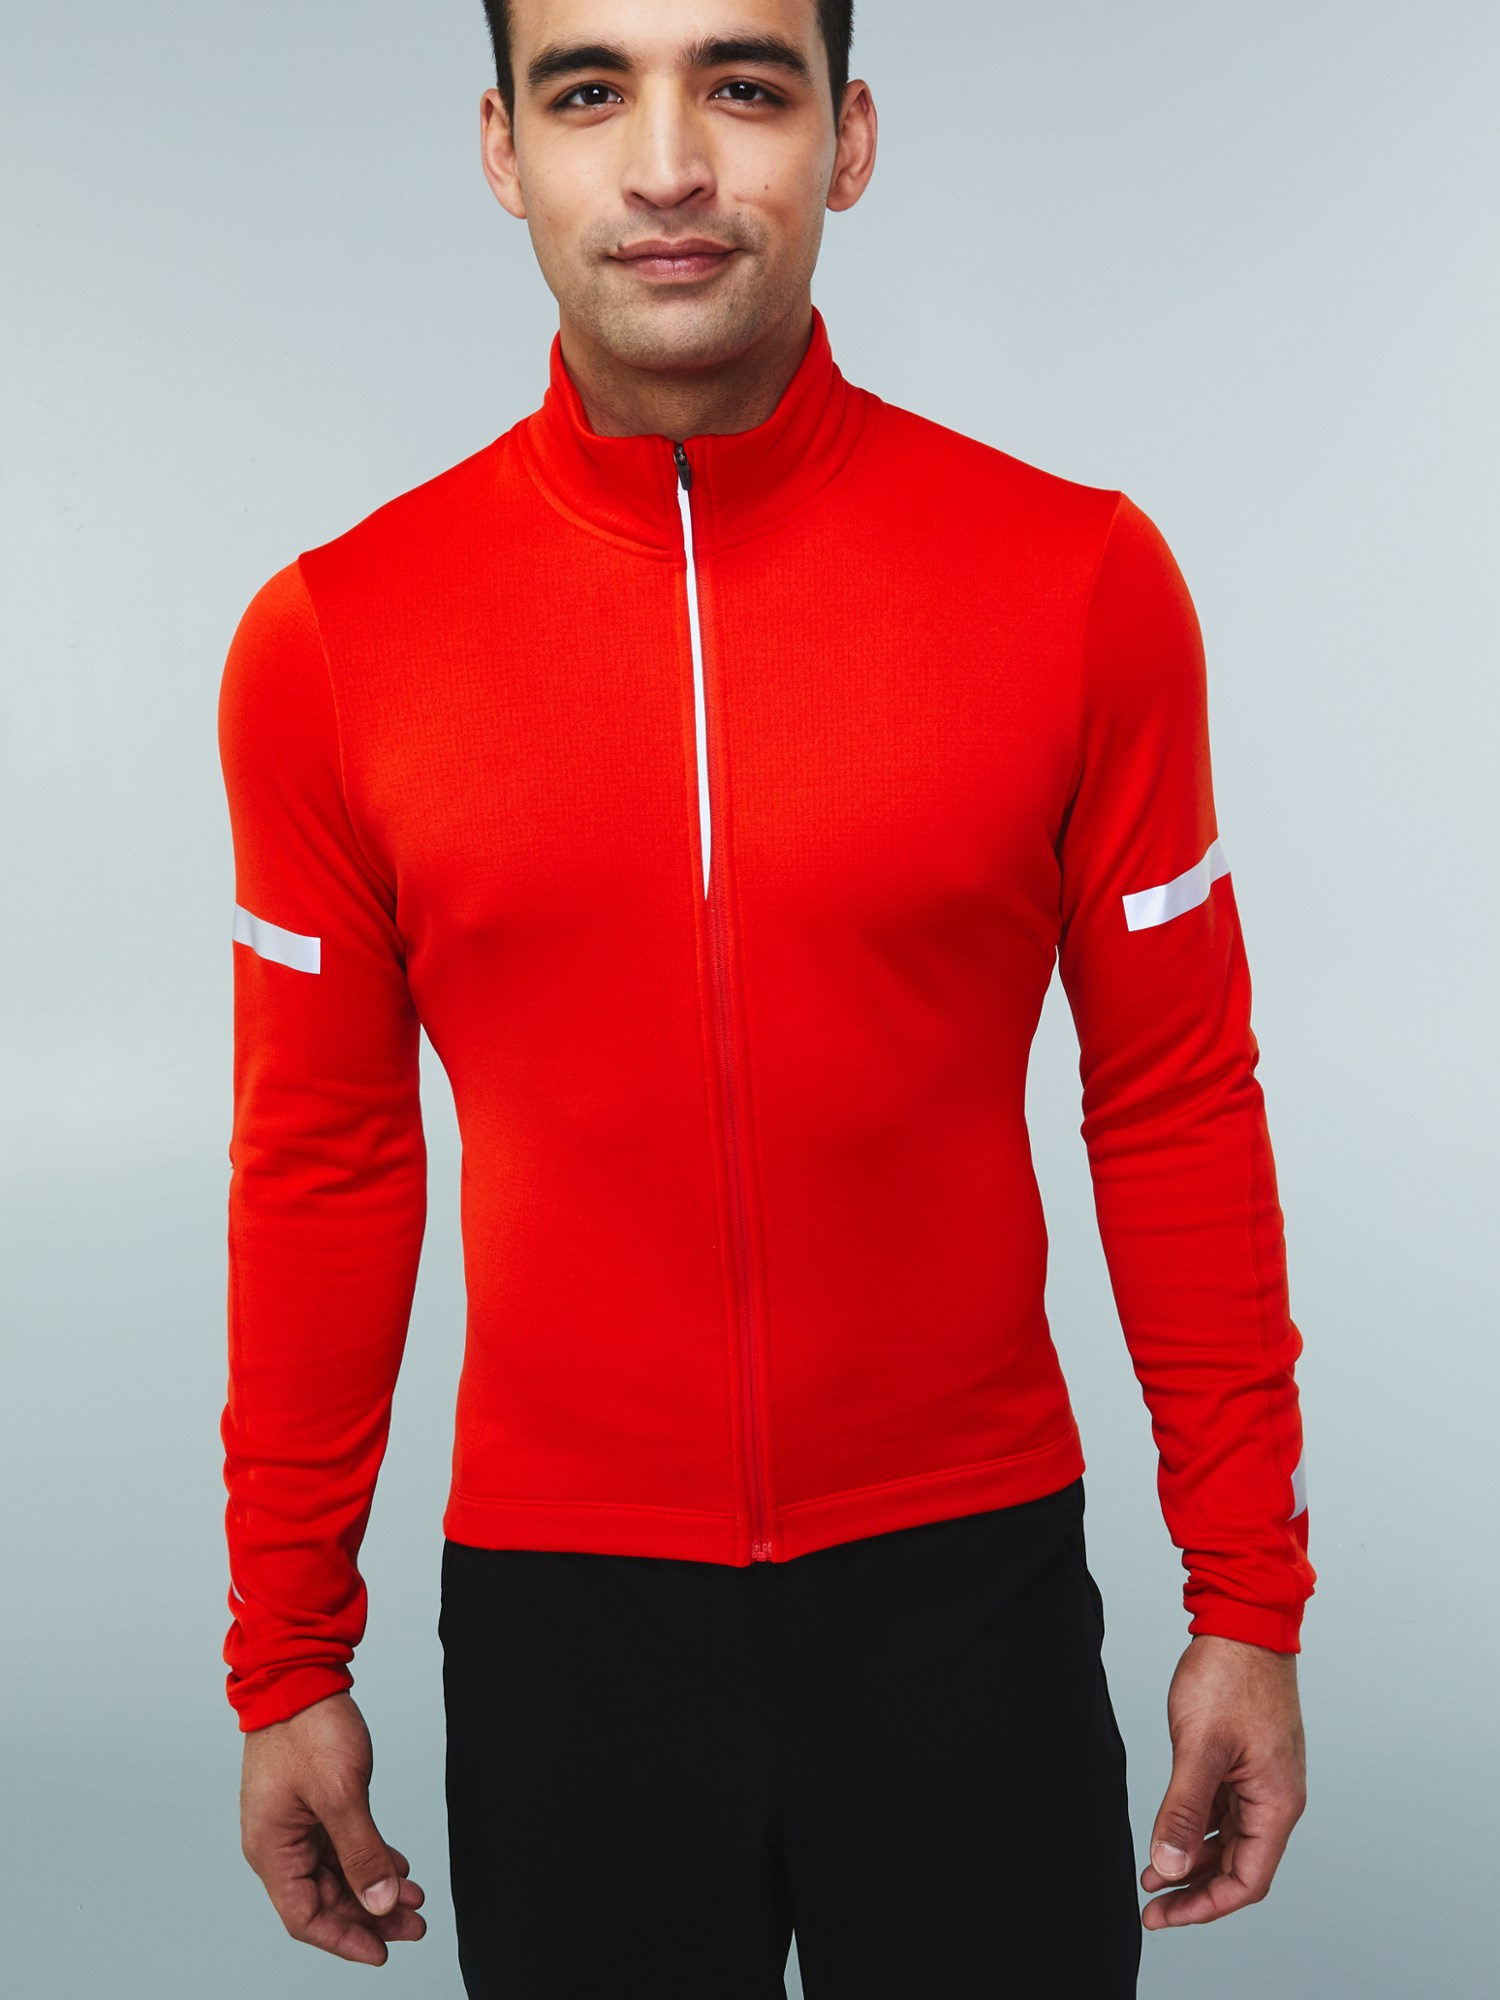 Co-op Cycles Thermal Jersey - Men's